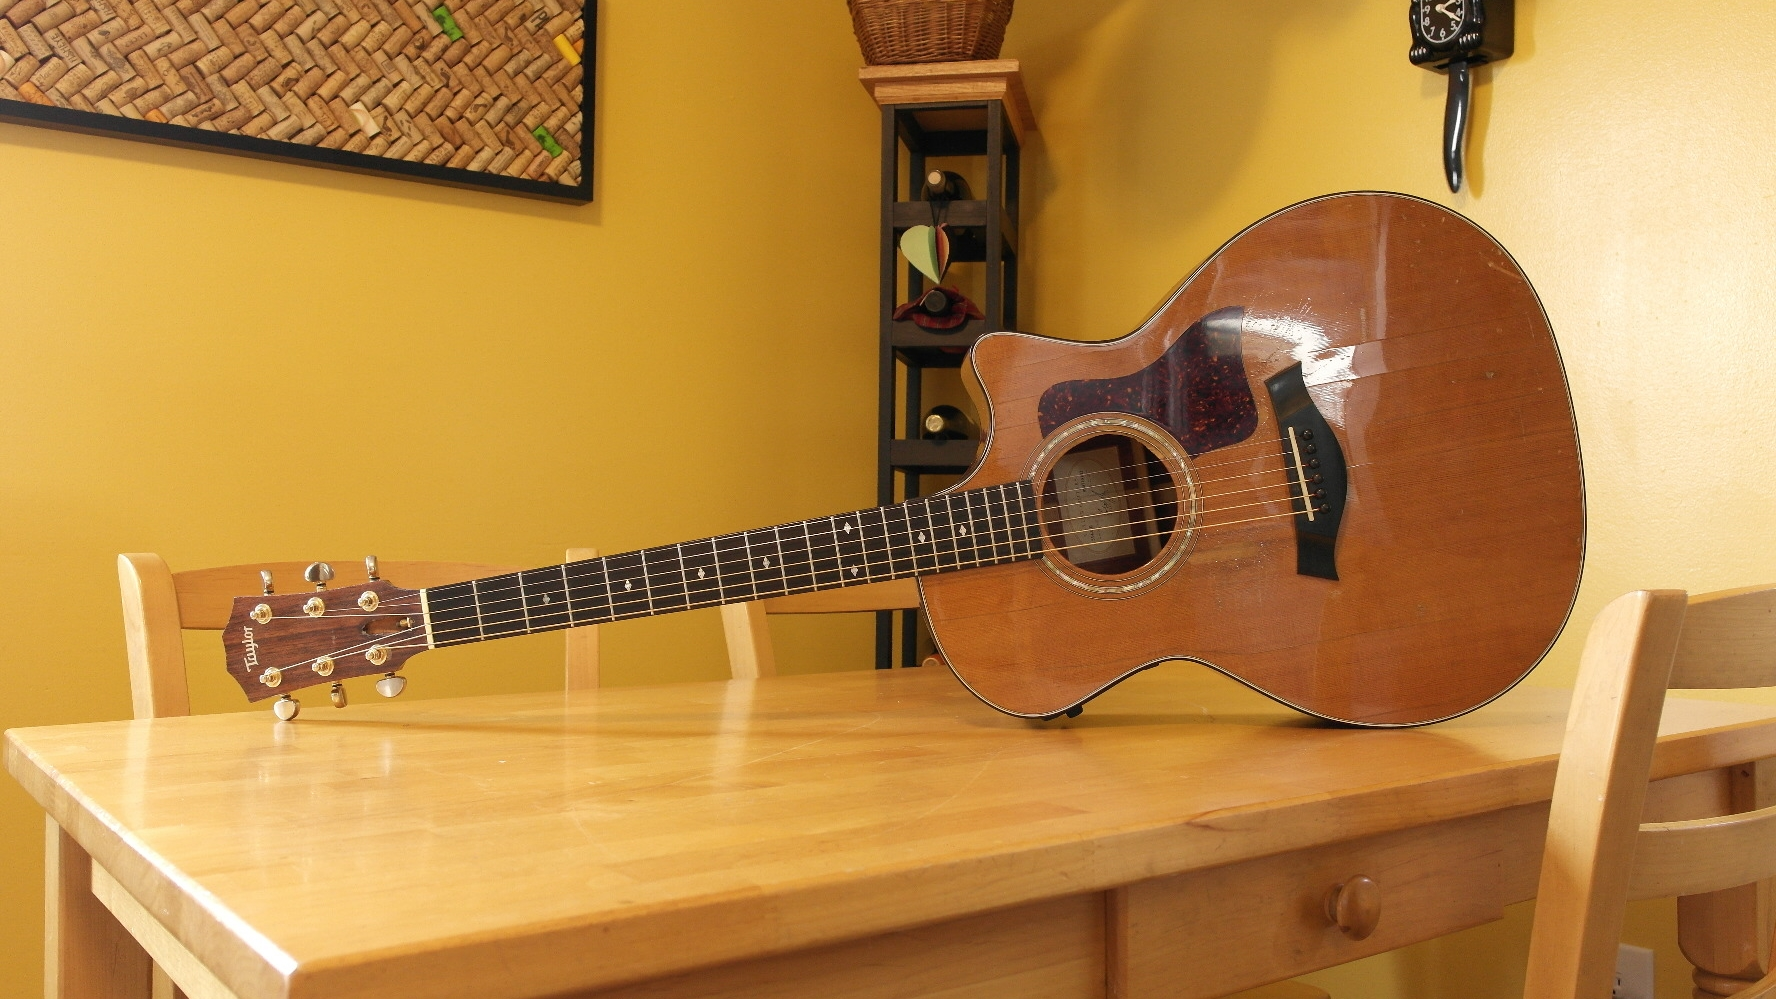 Todd's Taylor 514CE.  He's been playing her since 2001.